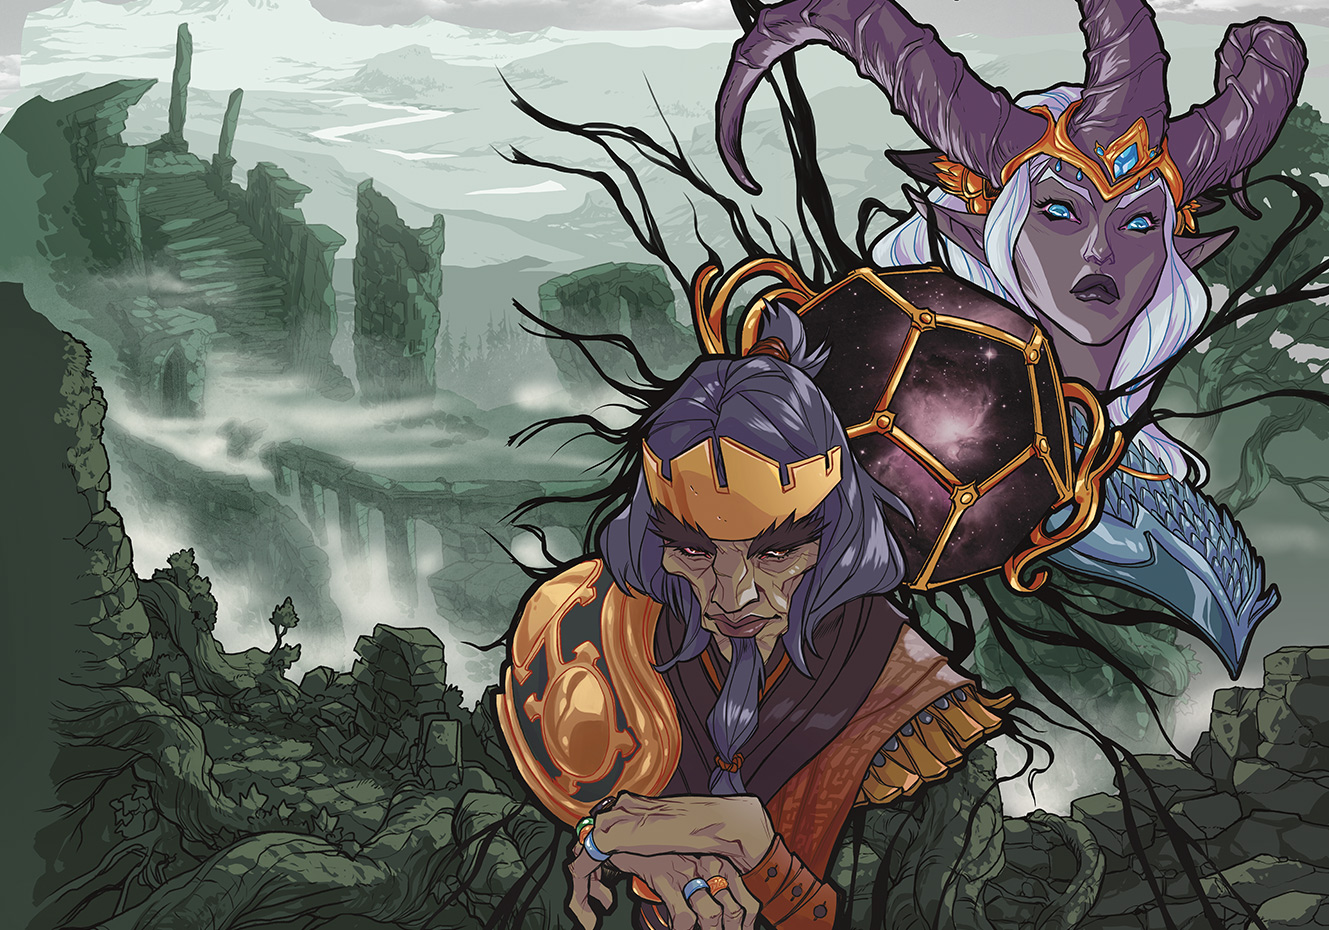 Cover art for Explorer's Guide to Wildemount features Bright Queen Leylas Kryn, a tiefling with large purple horns, and King Bertrand Dwendal. Between them is a Luxon beacon, a large jeweled polyhedral shaped like a d12.